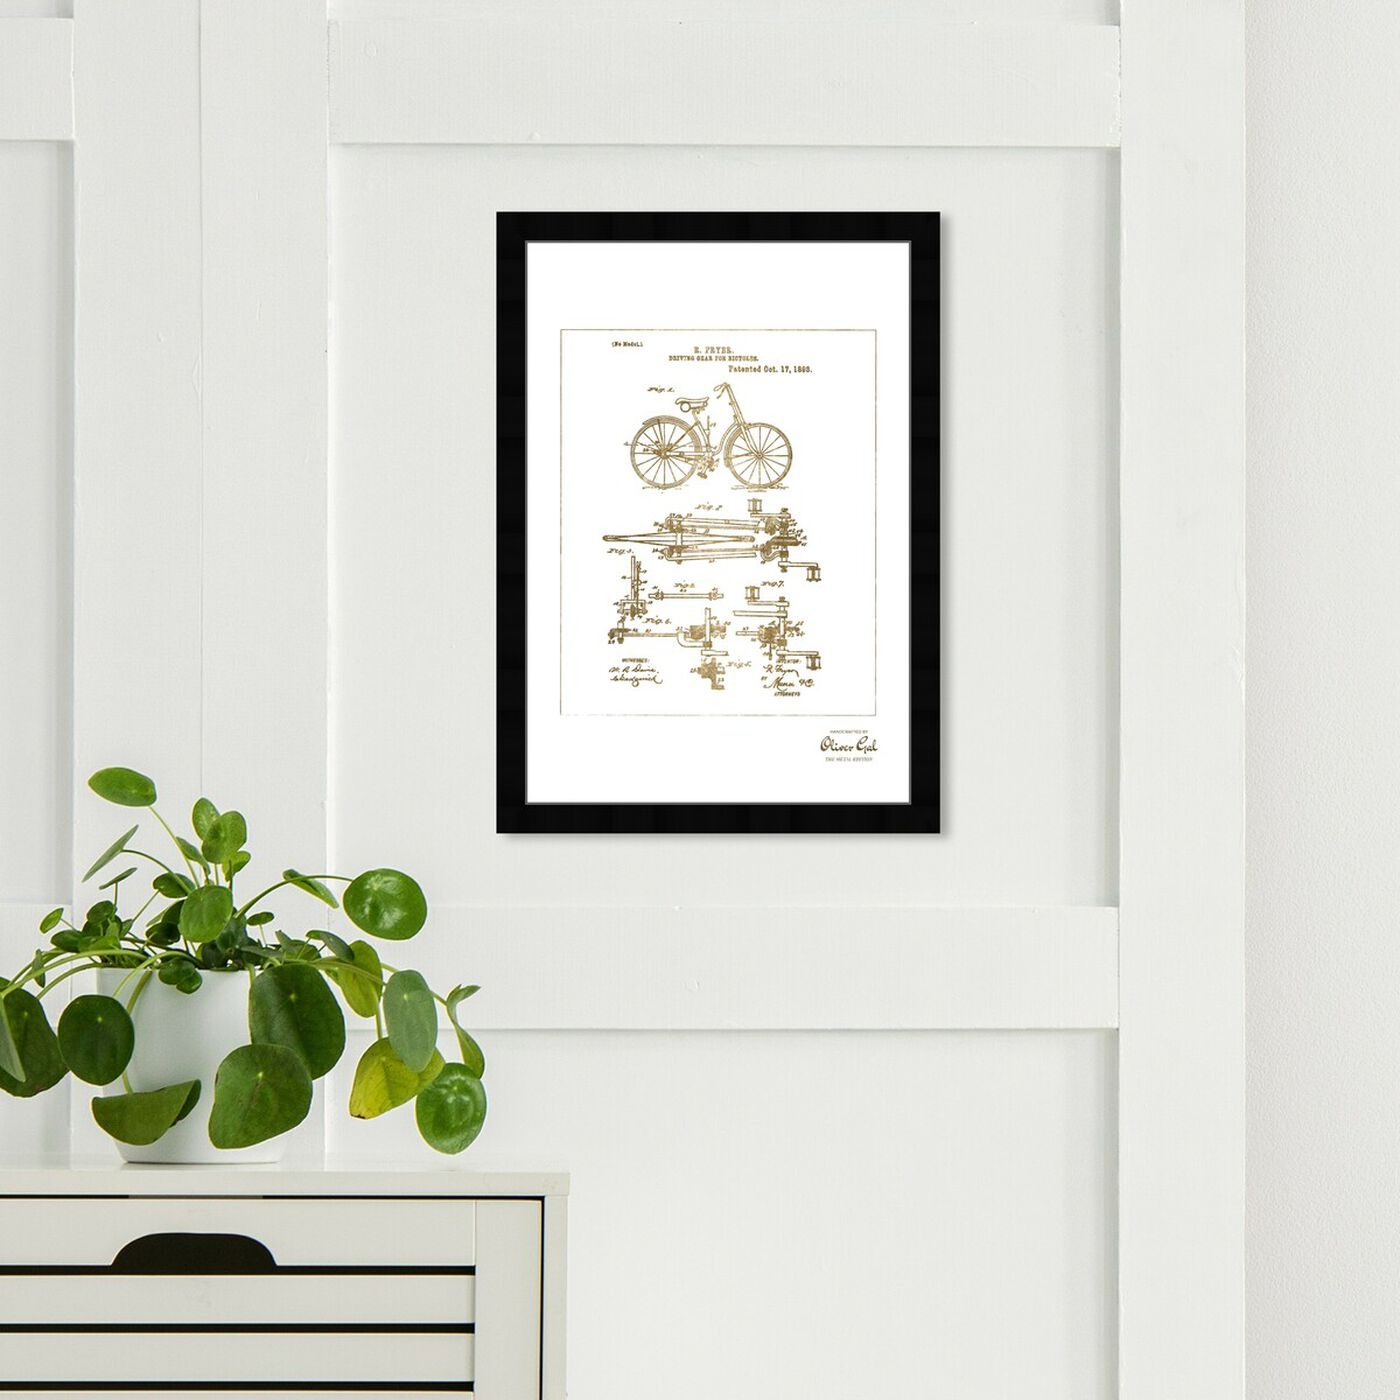 Hanging view of Fryer Driving Gear for Bicycle 1893 Gold featuring transportation and bicycles art.